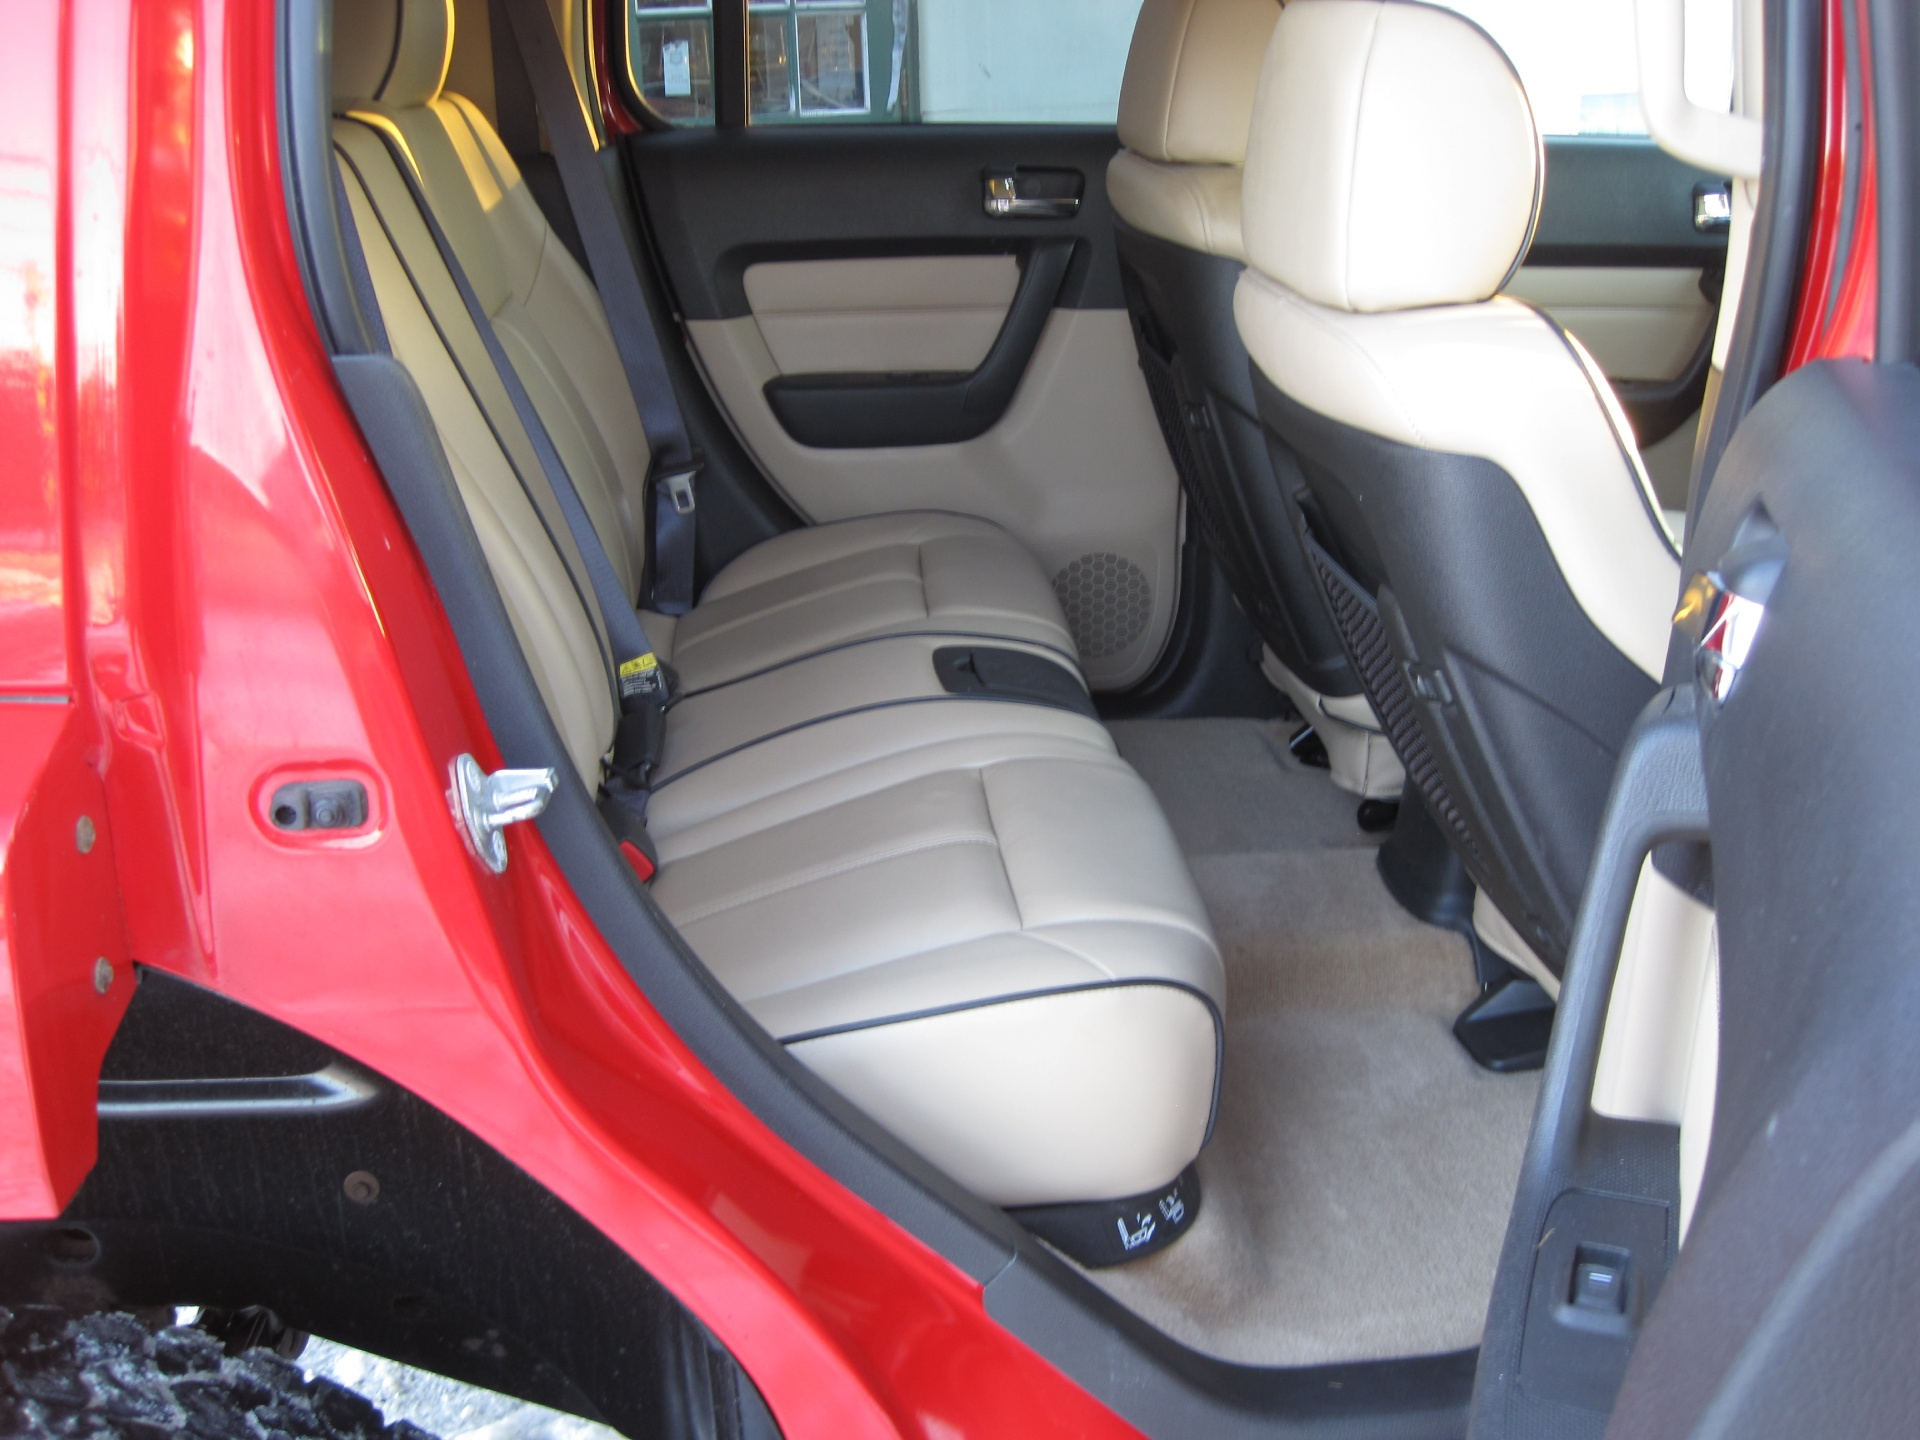 Used 2006 HUMMER H3 RARE 6 SPEED MANUAL,4WD,LEATHER,HEATED SEATS,SUNROOF | Albany, NY